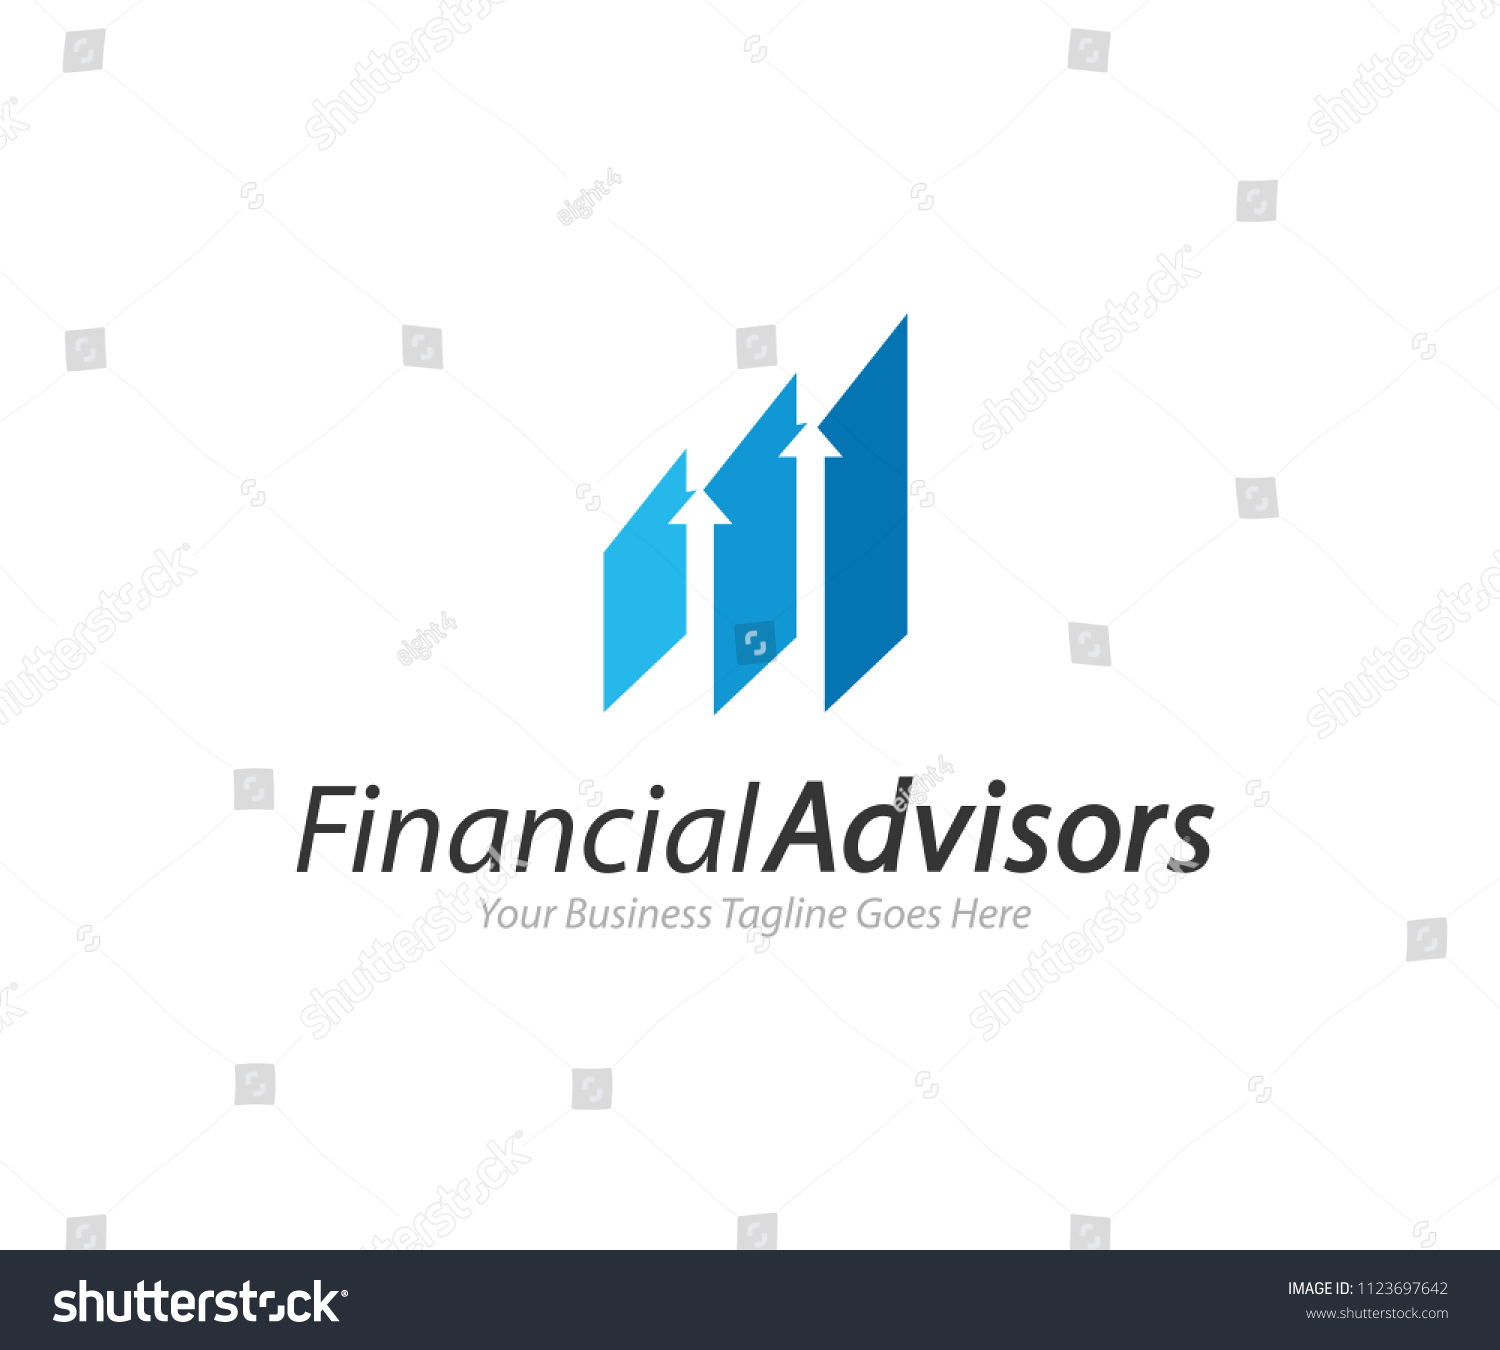 Financial Advisors Logo Design Template Vector Icon #1123697642